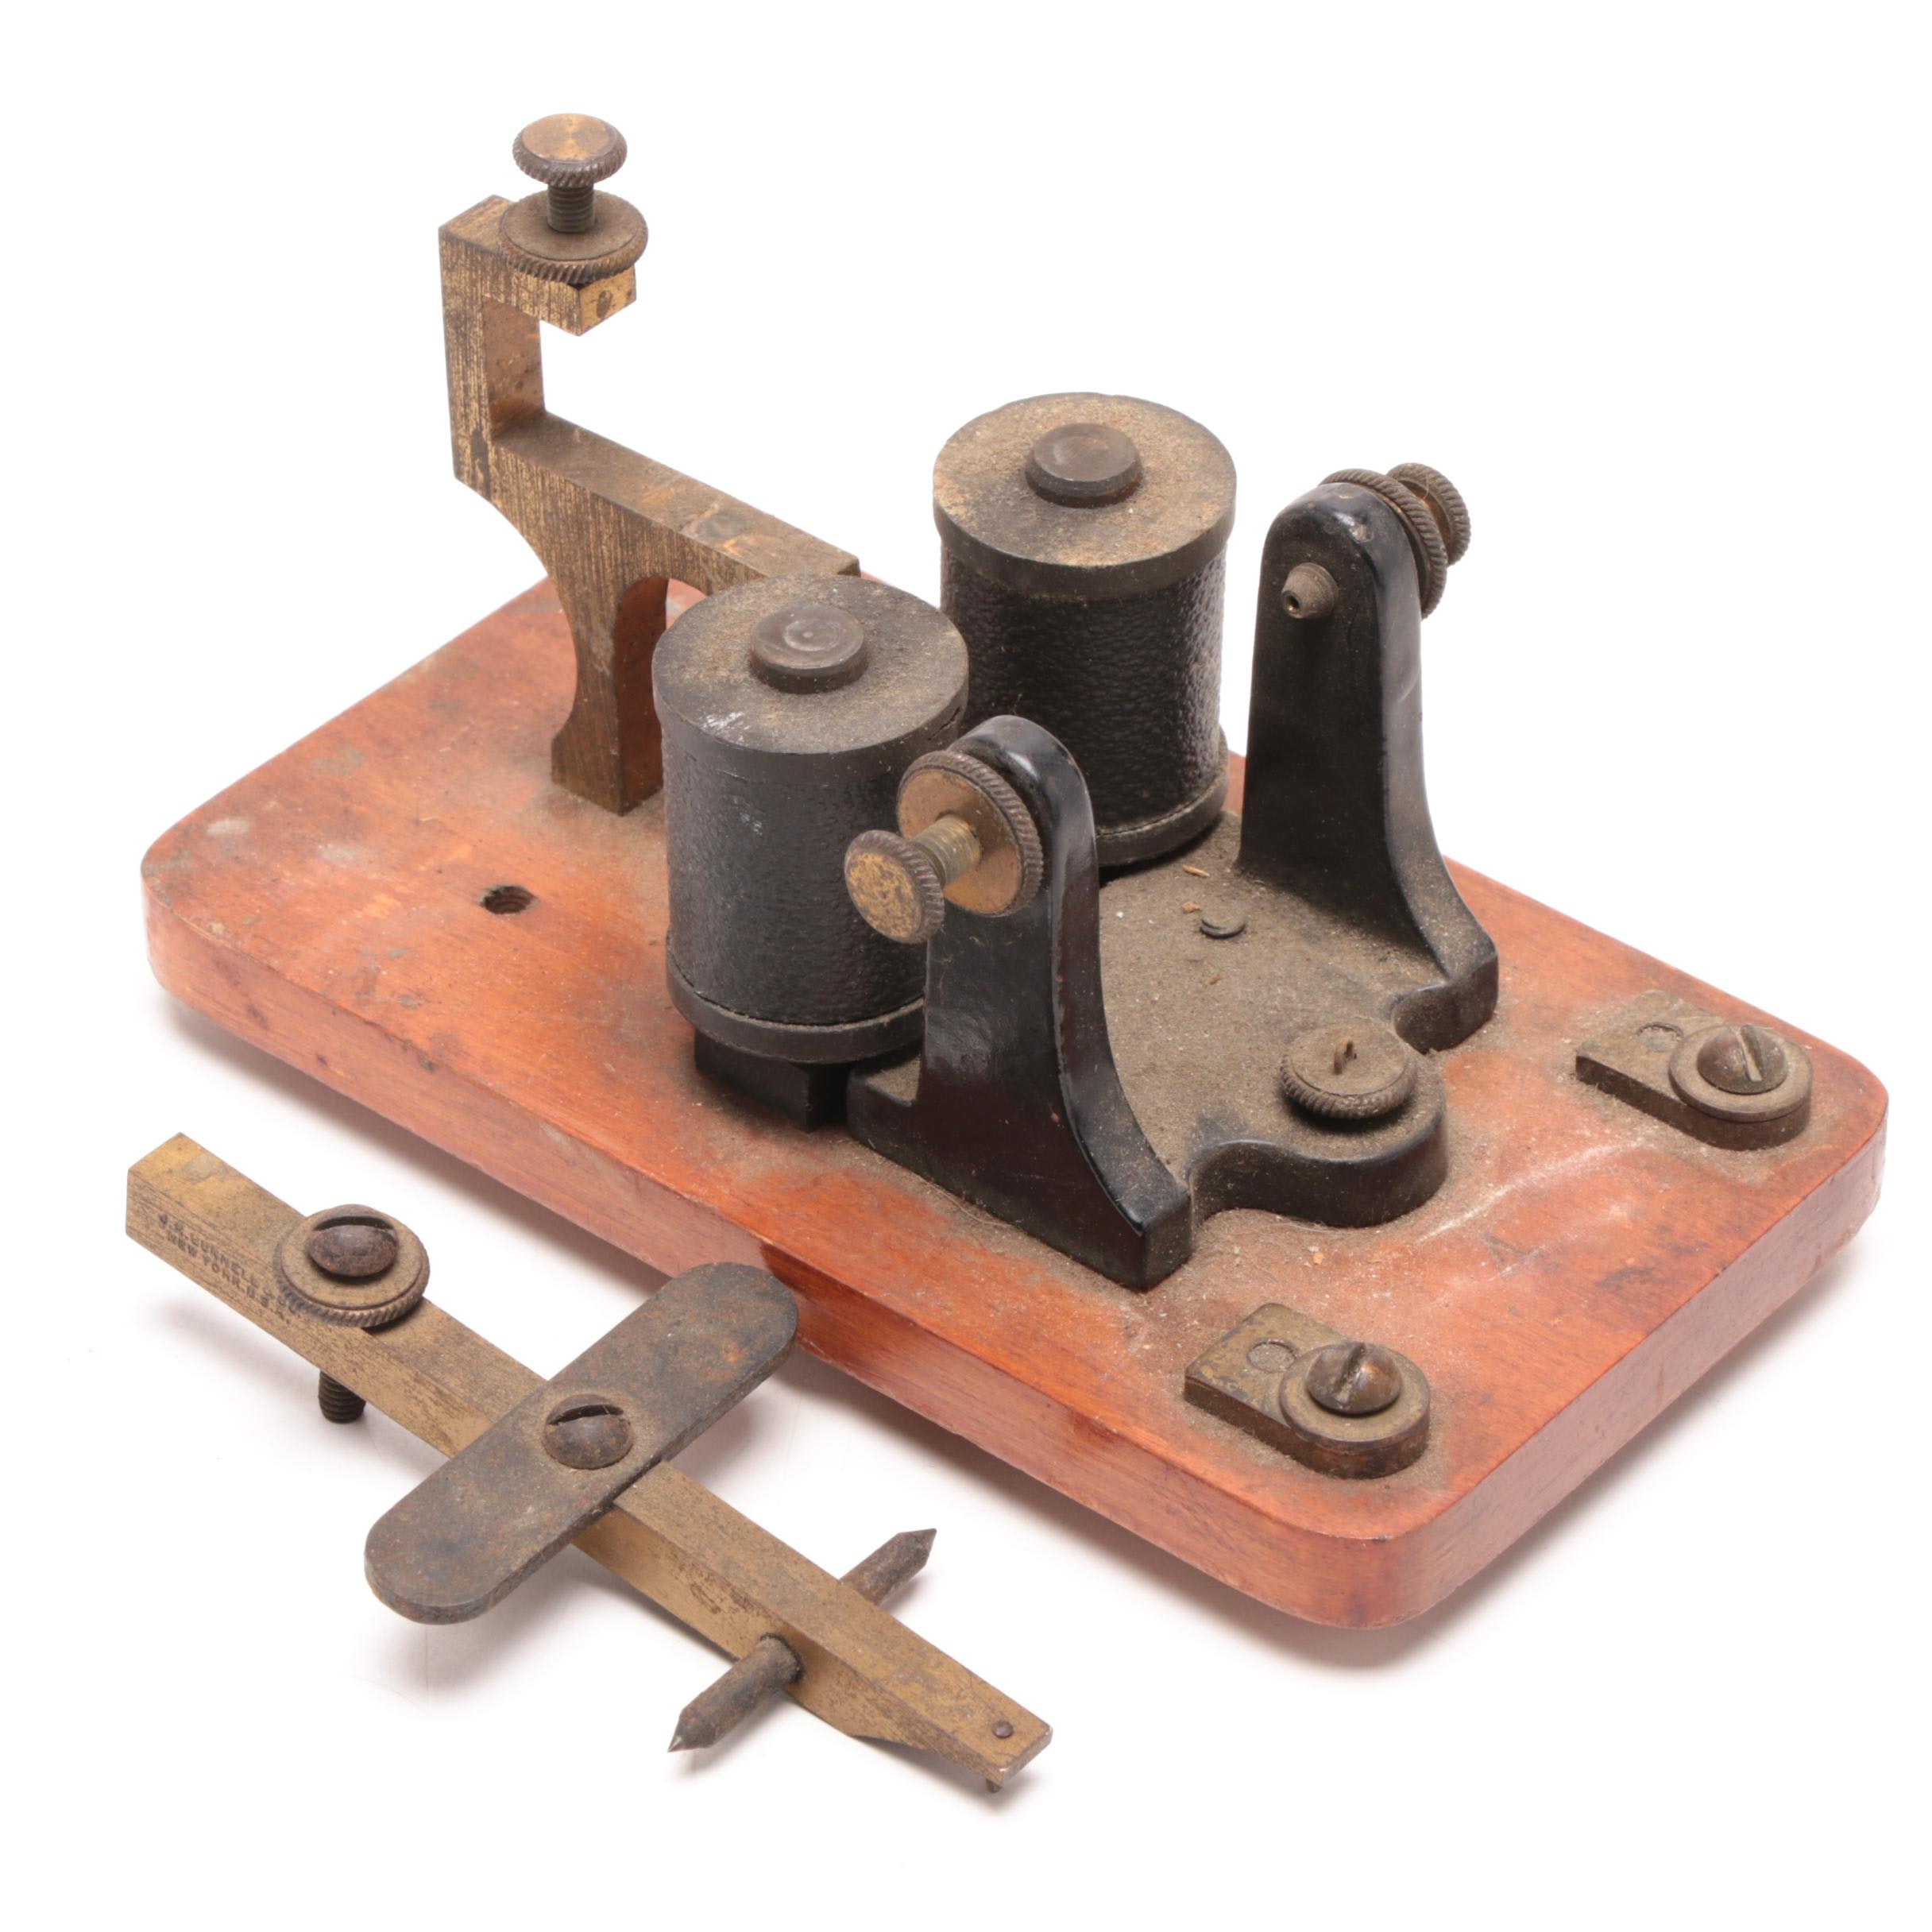 J.H. Bunnell & Co. Telegraph Relay Sounder, Early 20th Century